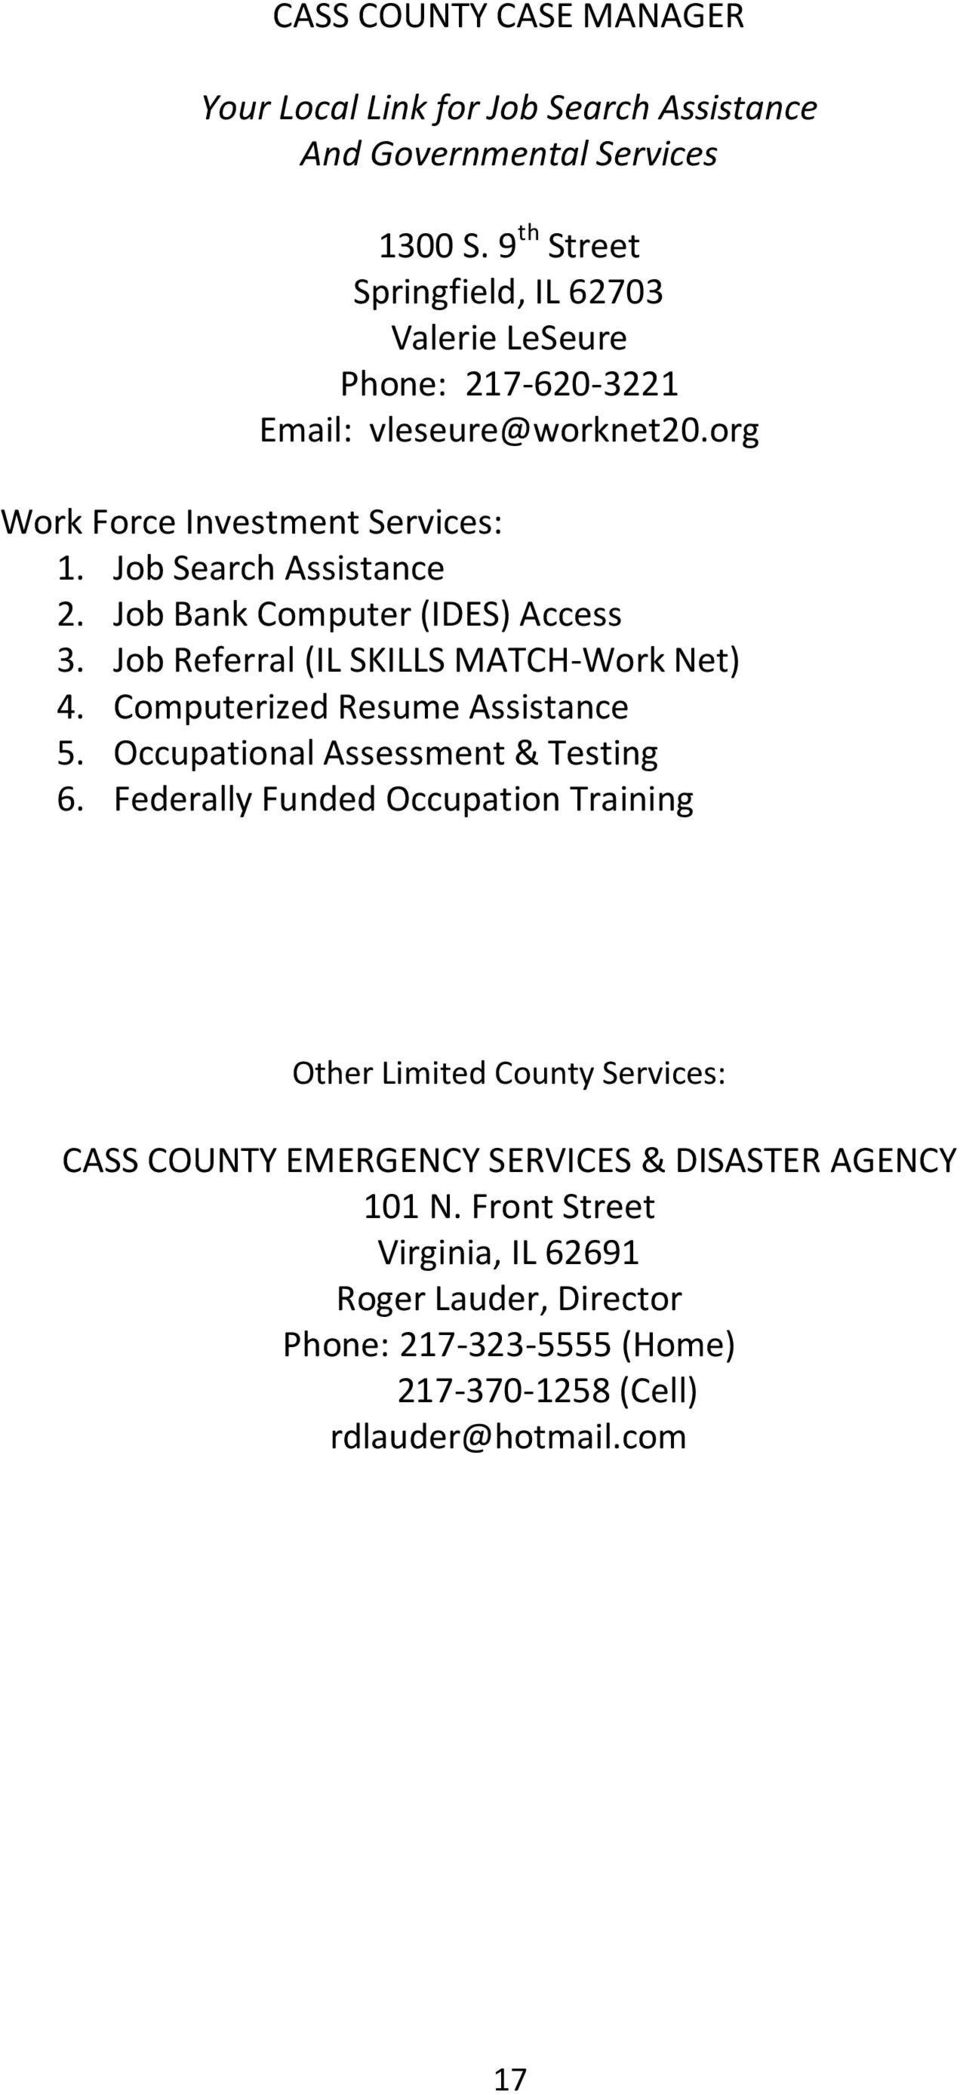 Cass County Directory Pdf